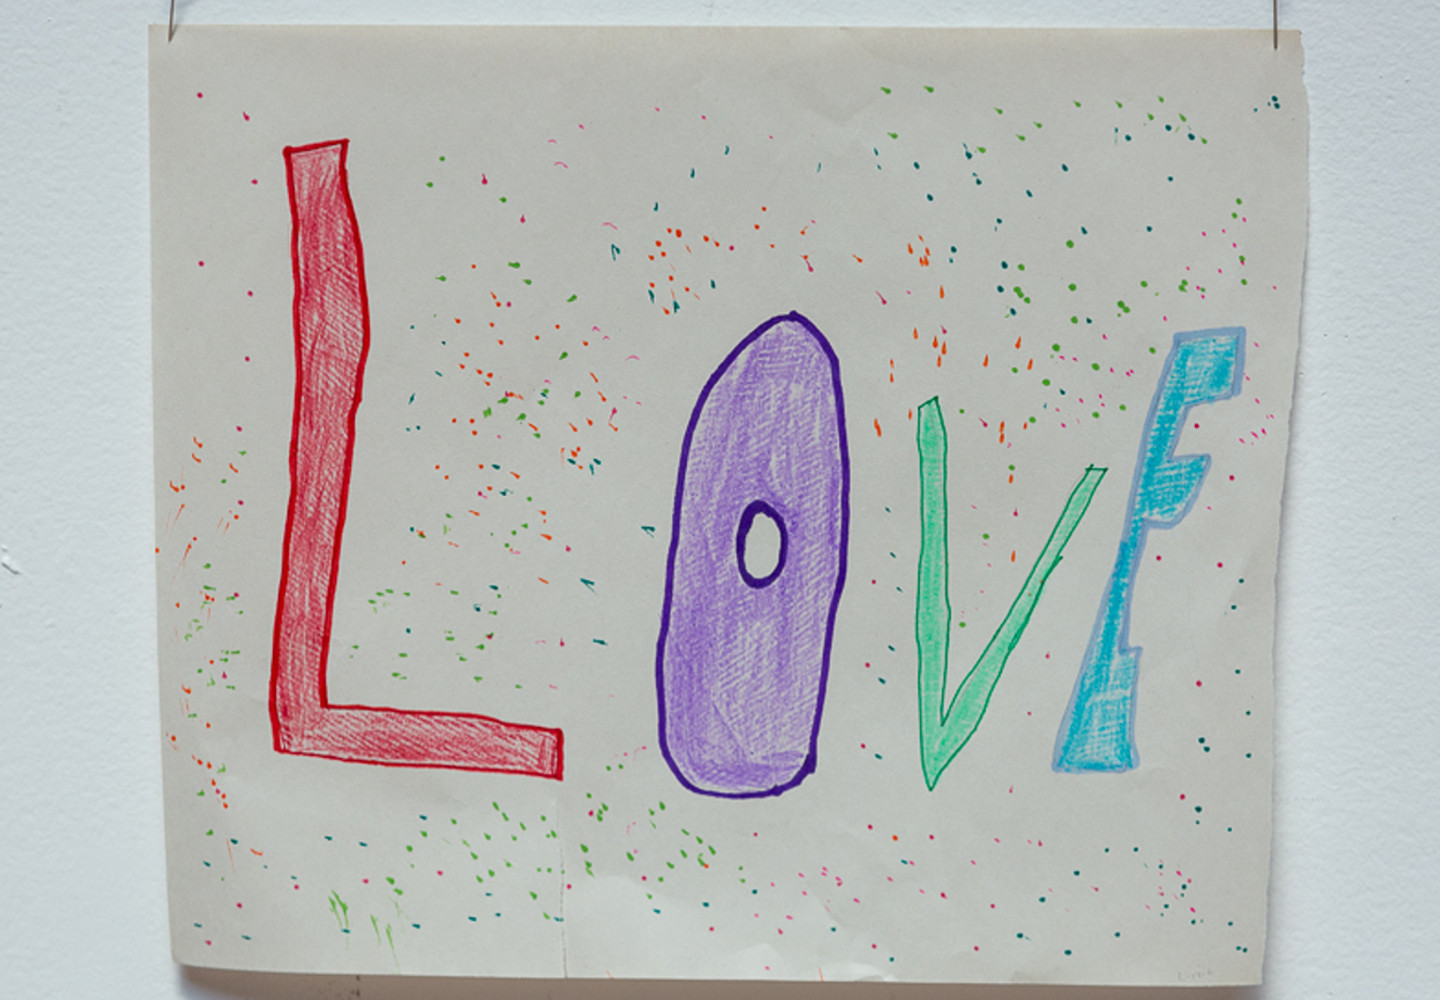 A drawn sign saying 'Love'